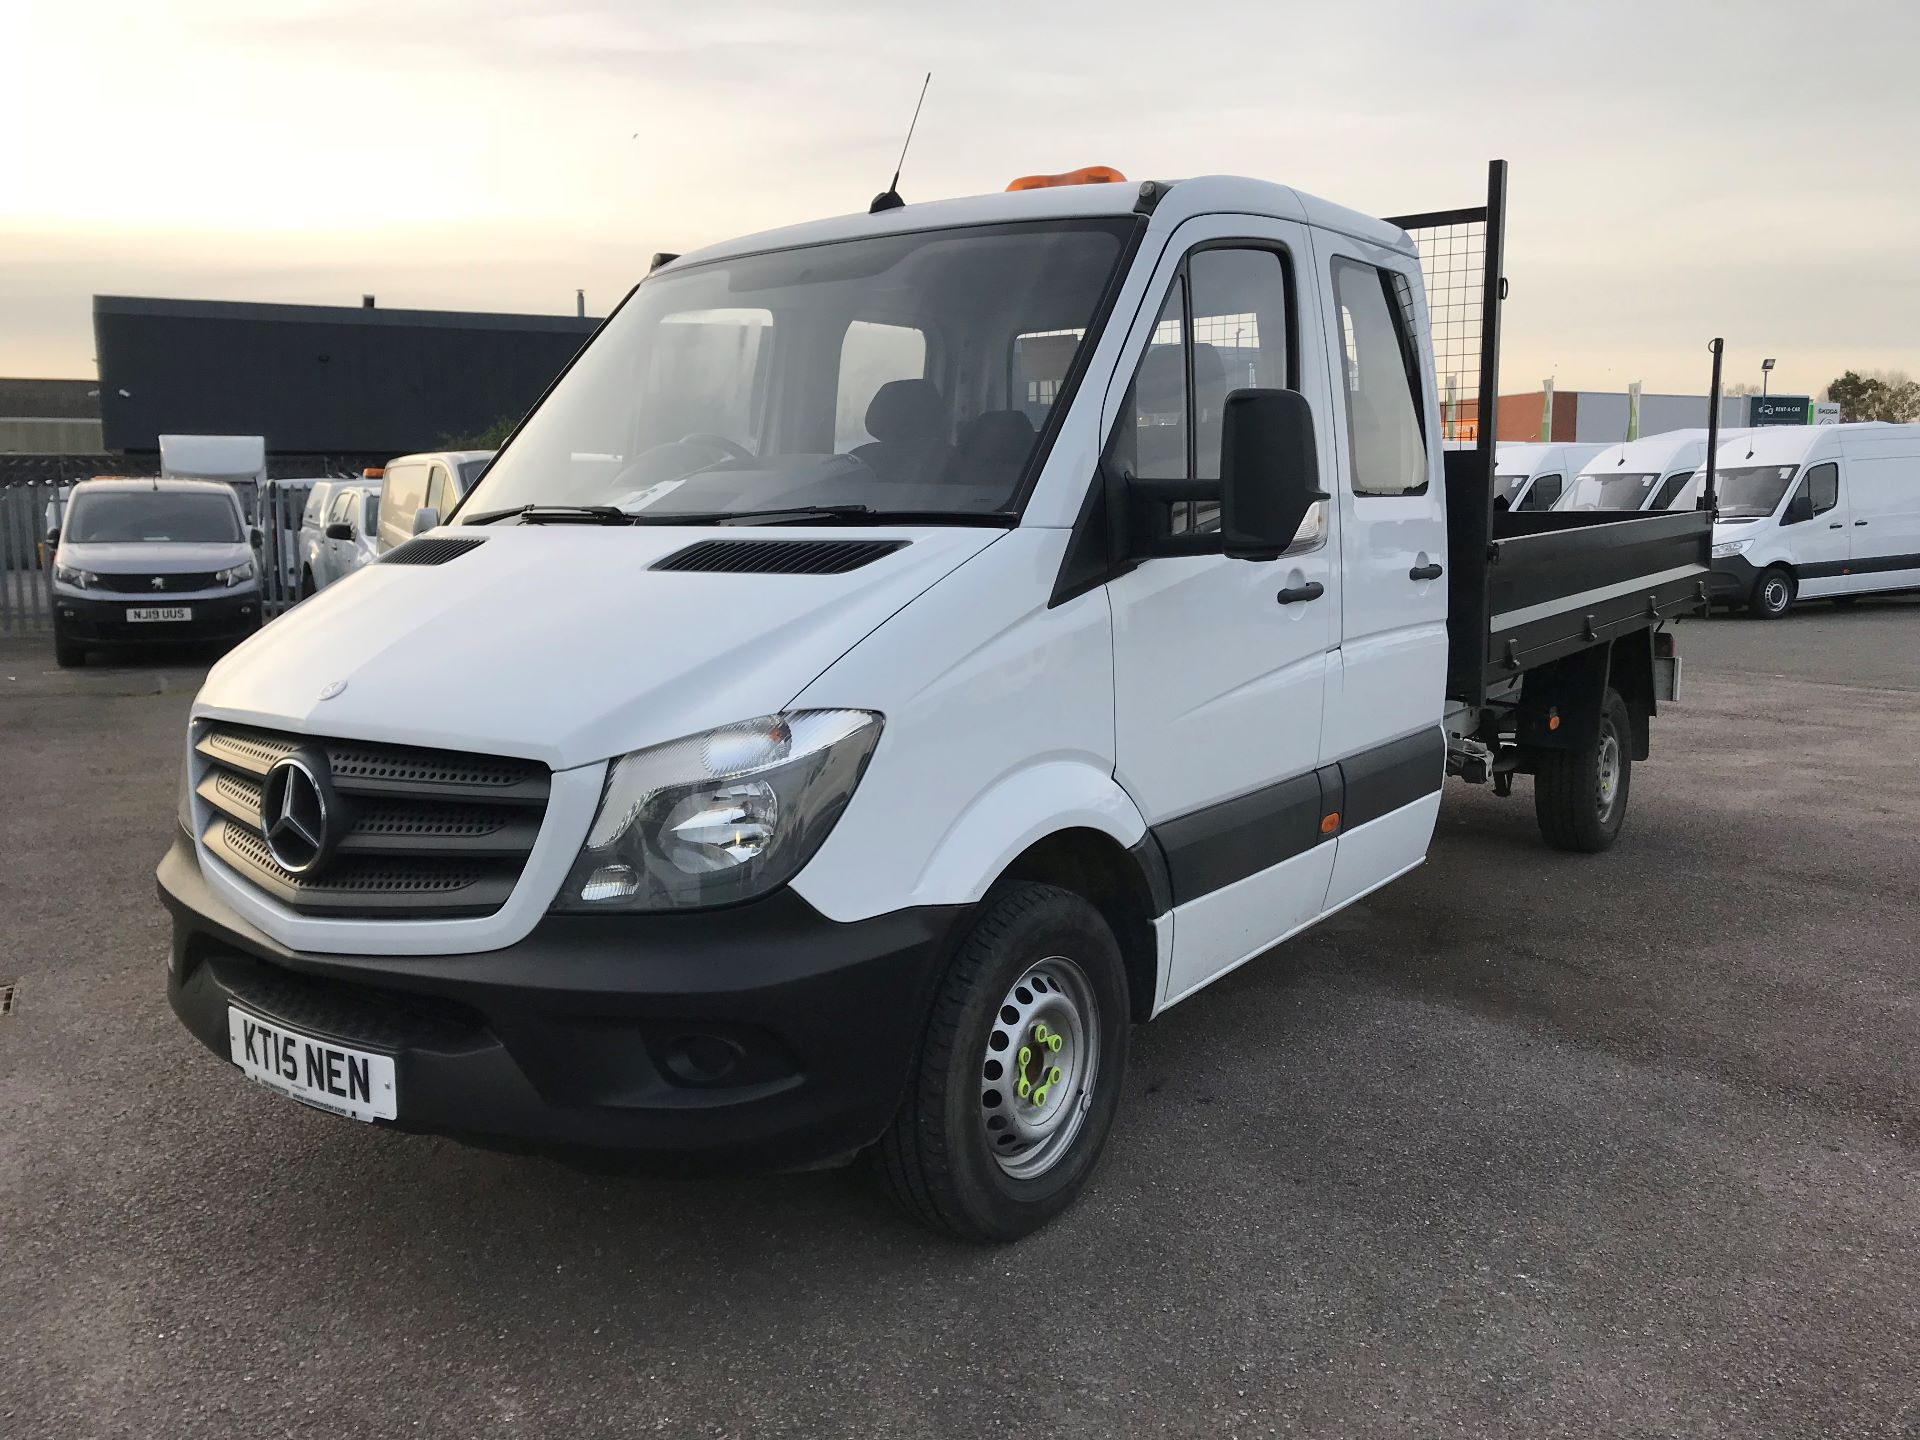 2015 Mercedes-Benz Sprinter  313 LONG CREW CAB TIPPER EURO 5 (KT15NEN) Thumbnail 2